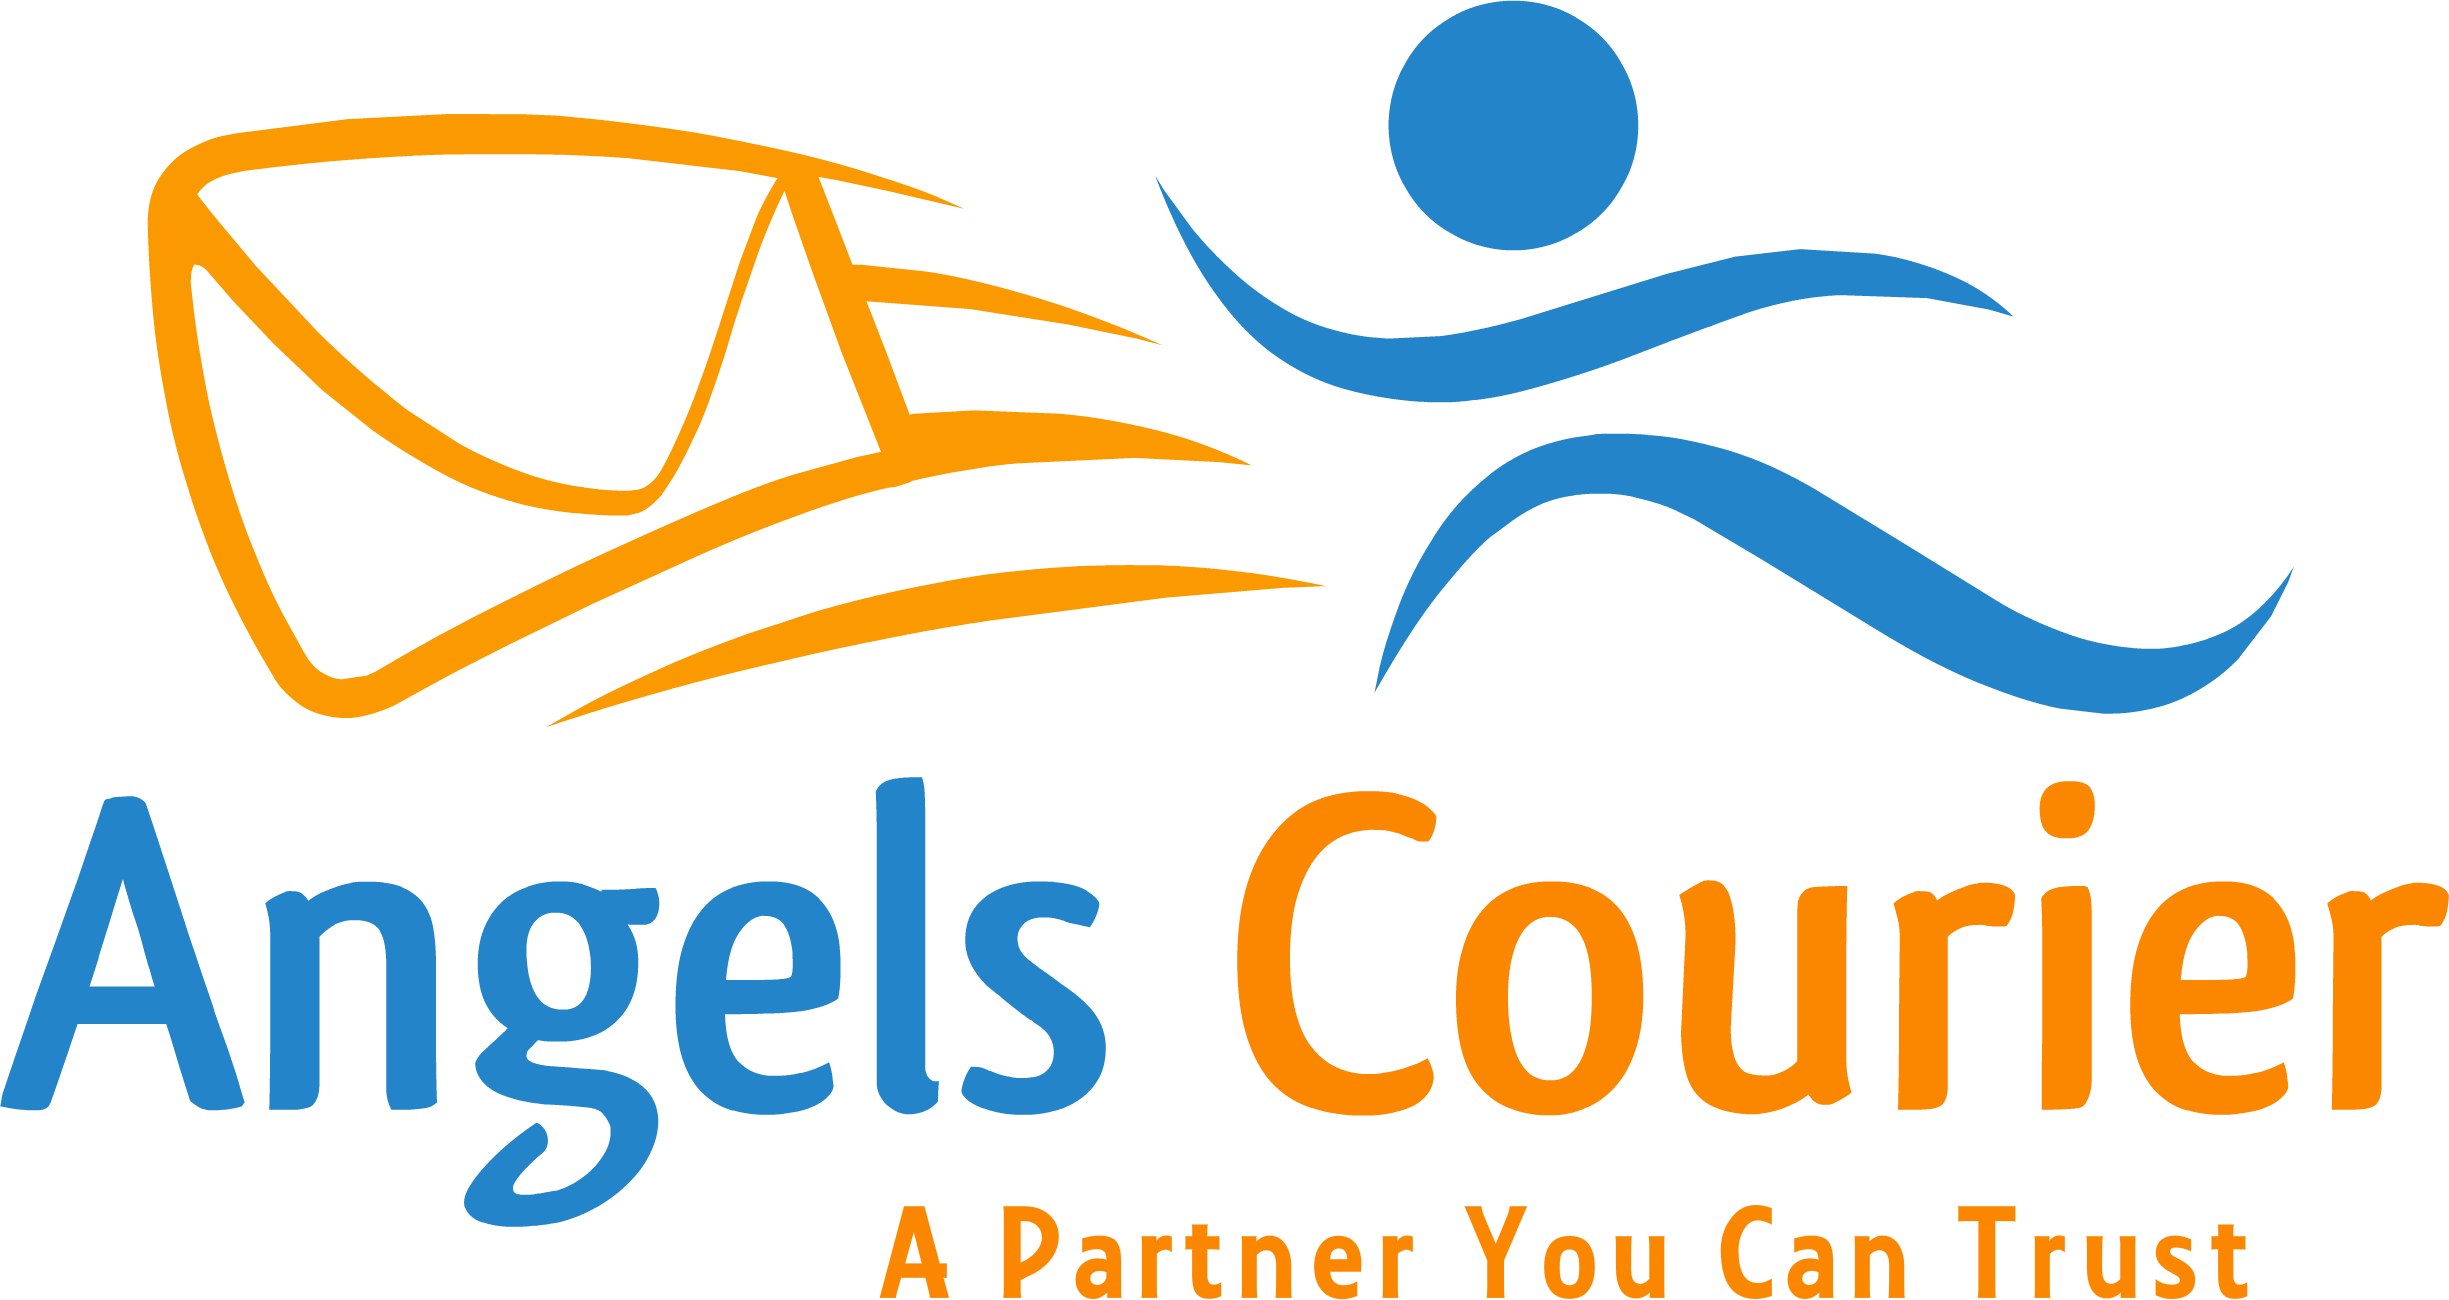 Angels Courier, Inc